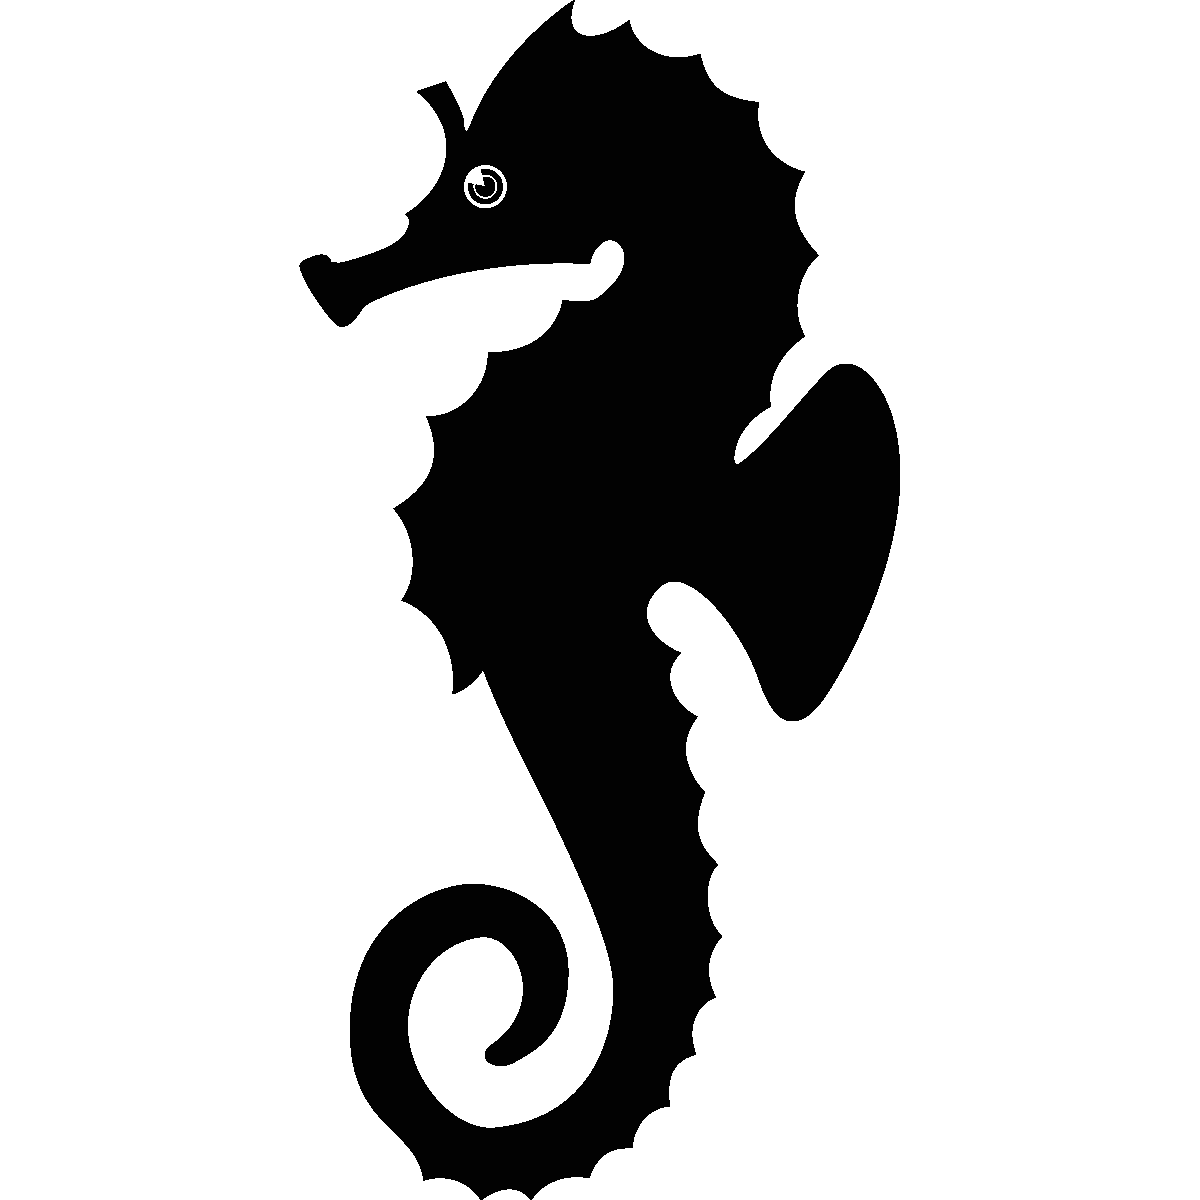 High Resolution Seahorse Png Clipart image #24548